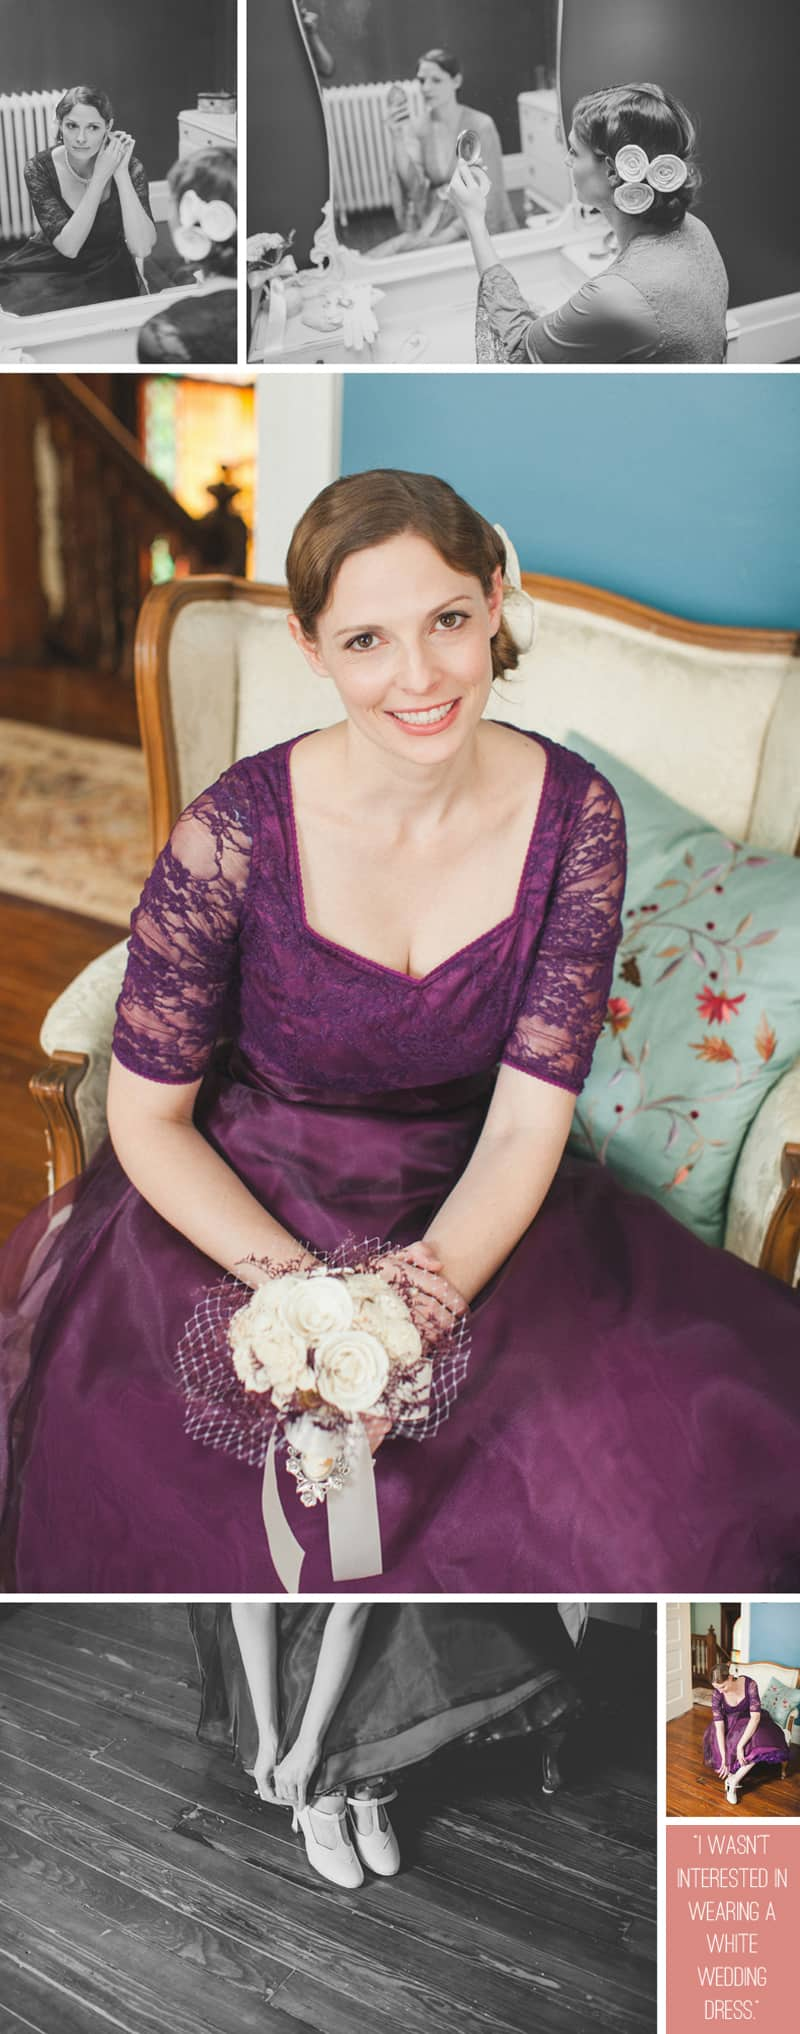 A Purple Wedding Dress For a Backyard Wedding 4